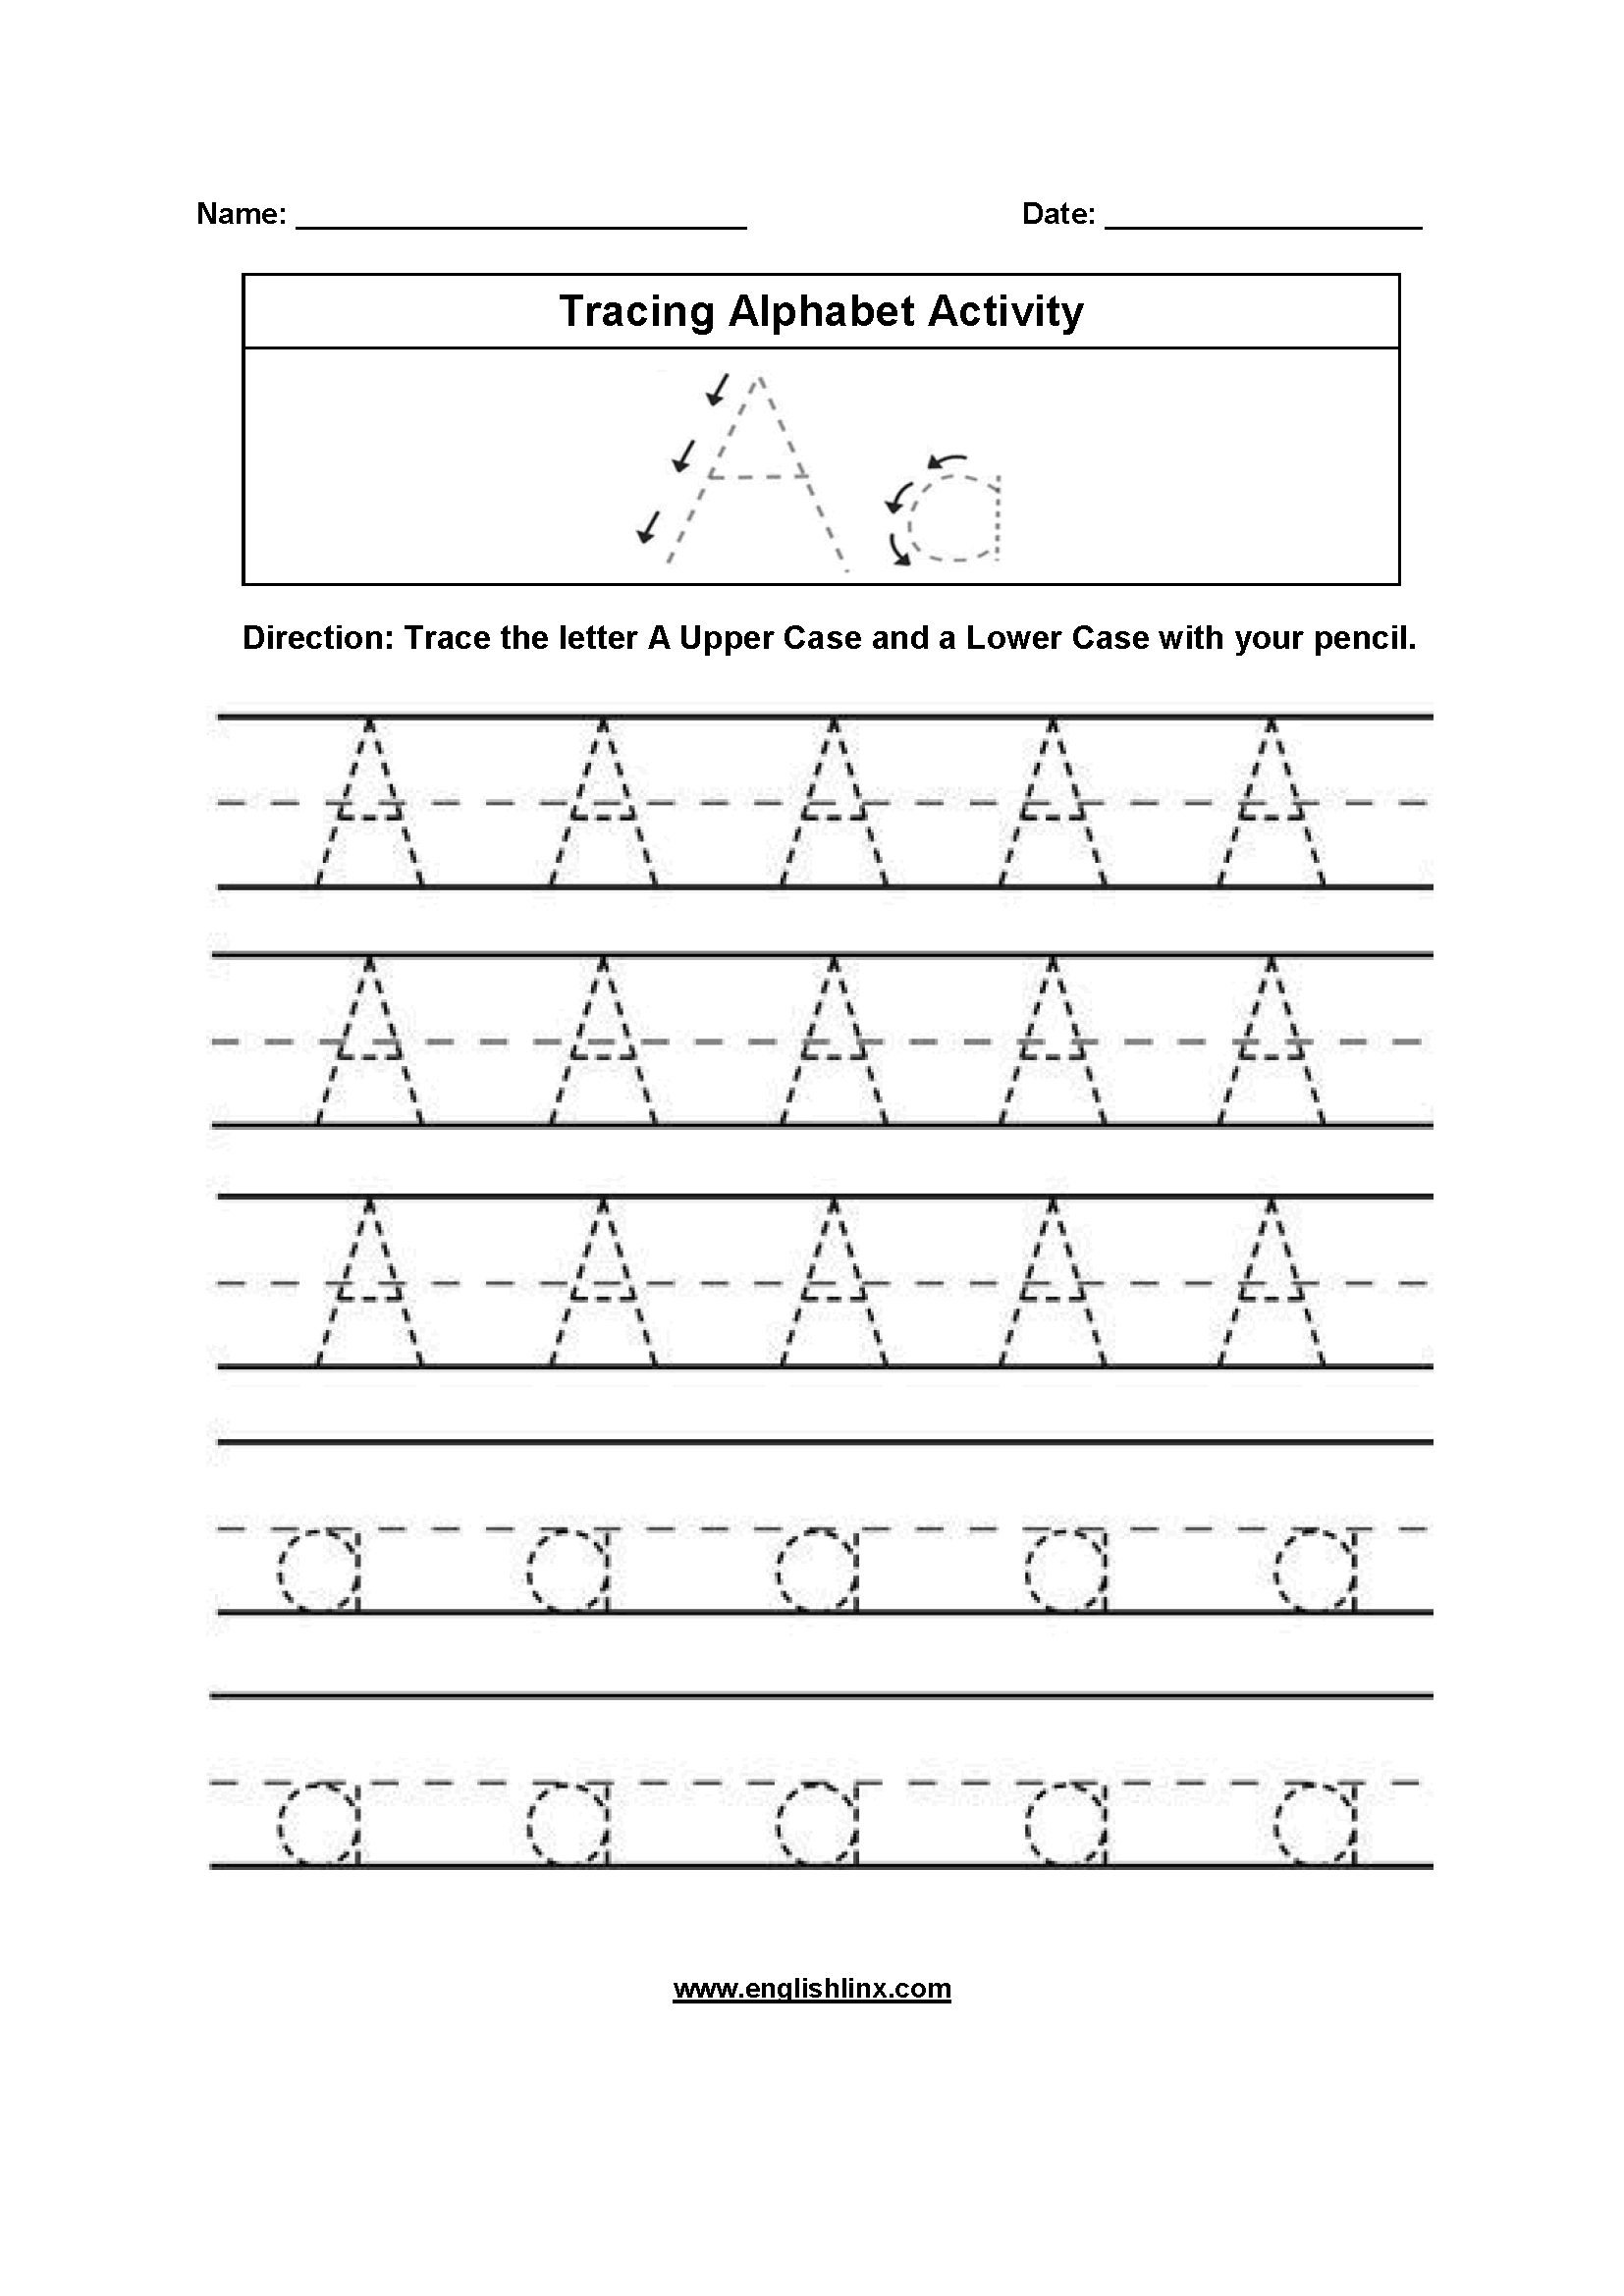 Alphabet Worksheets | Tracing Alphabet Worksheets with Alphabet Worksheets 1St Grade